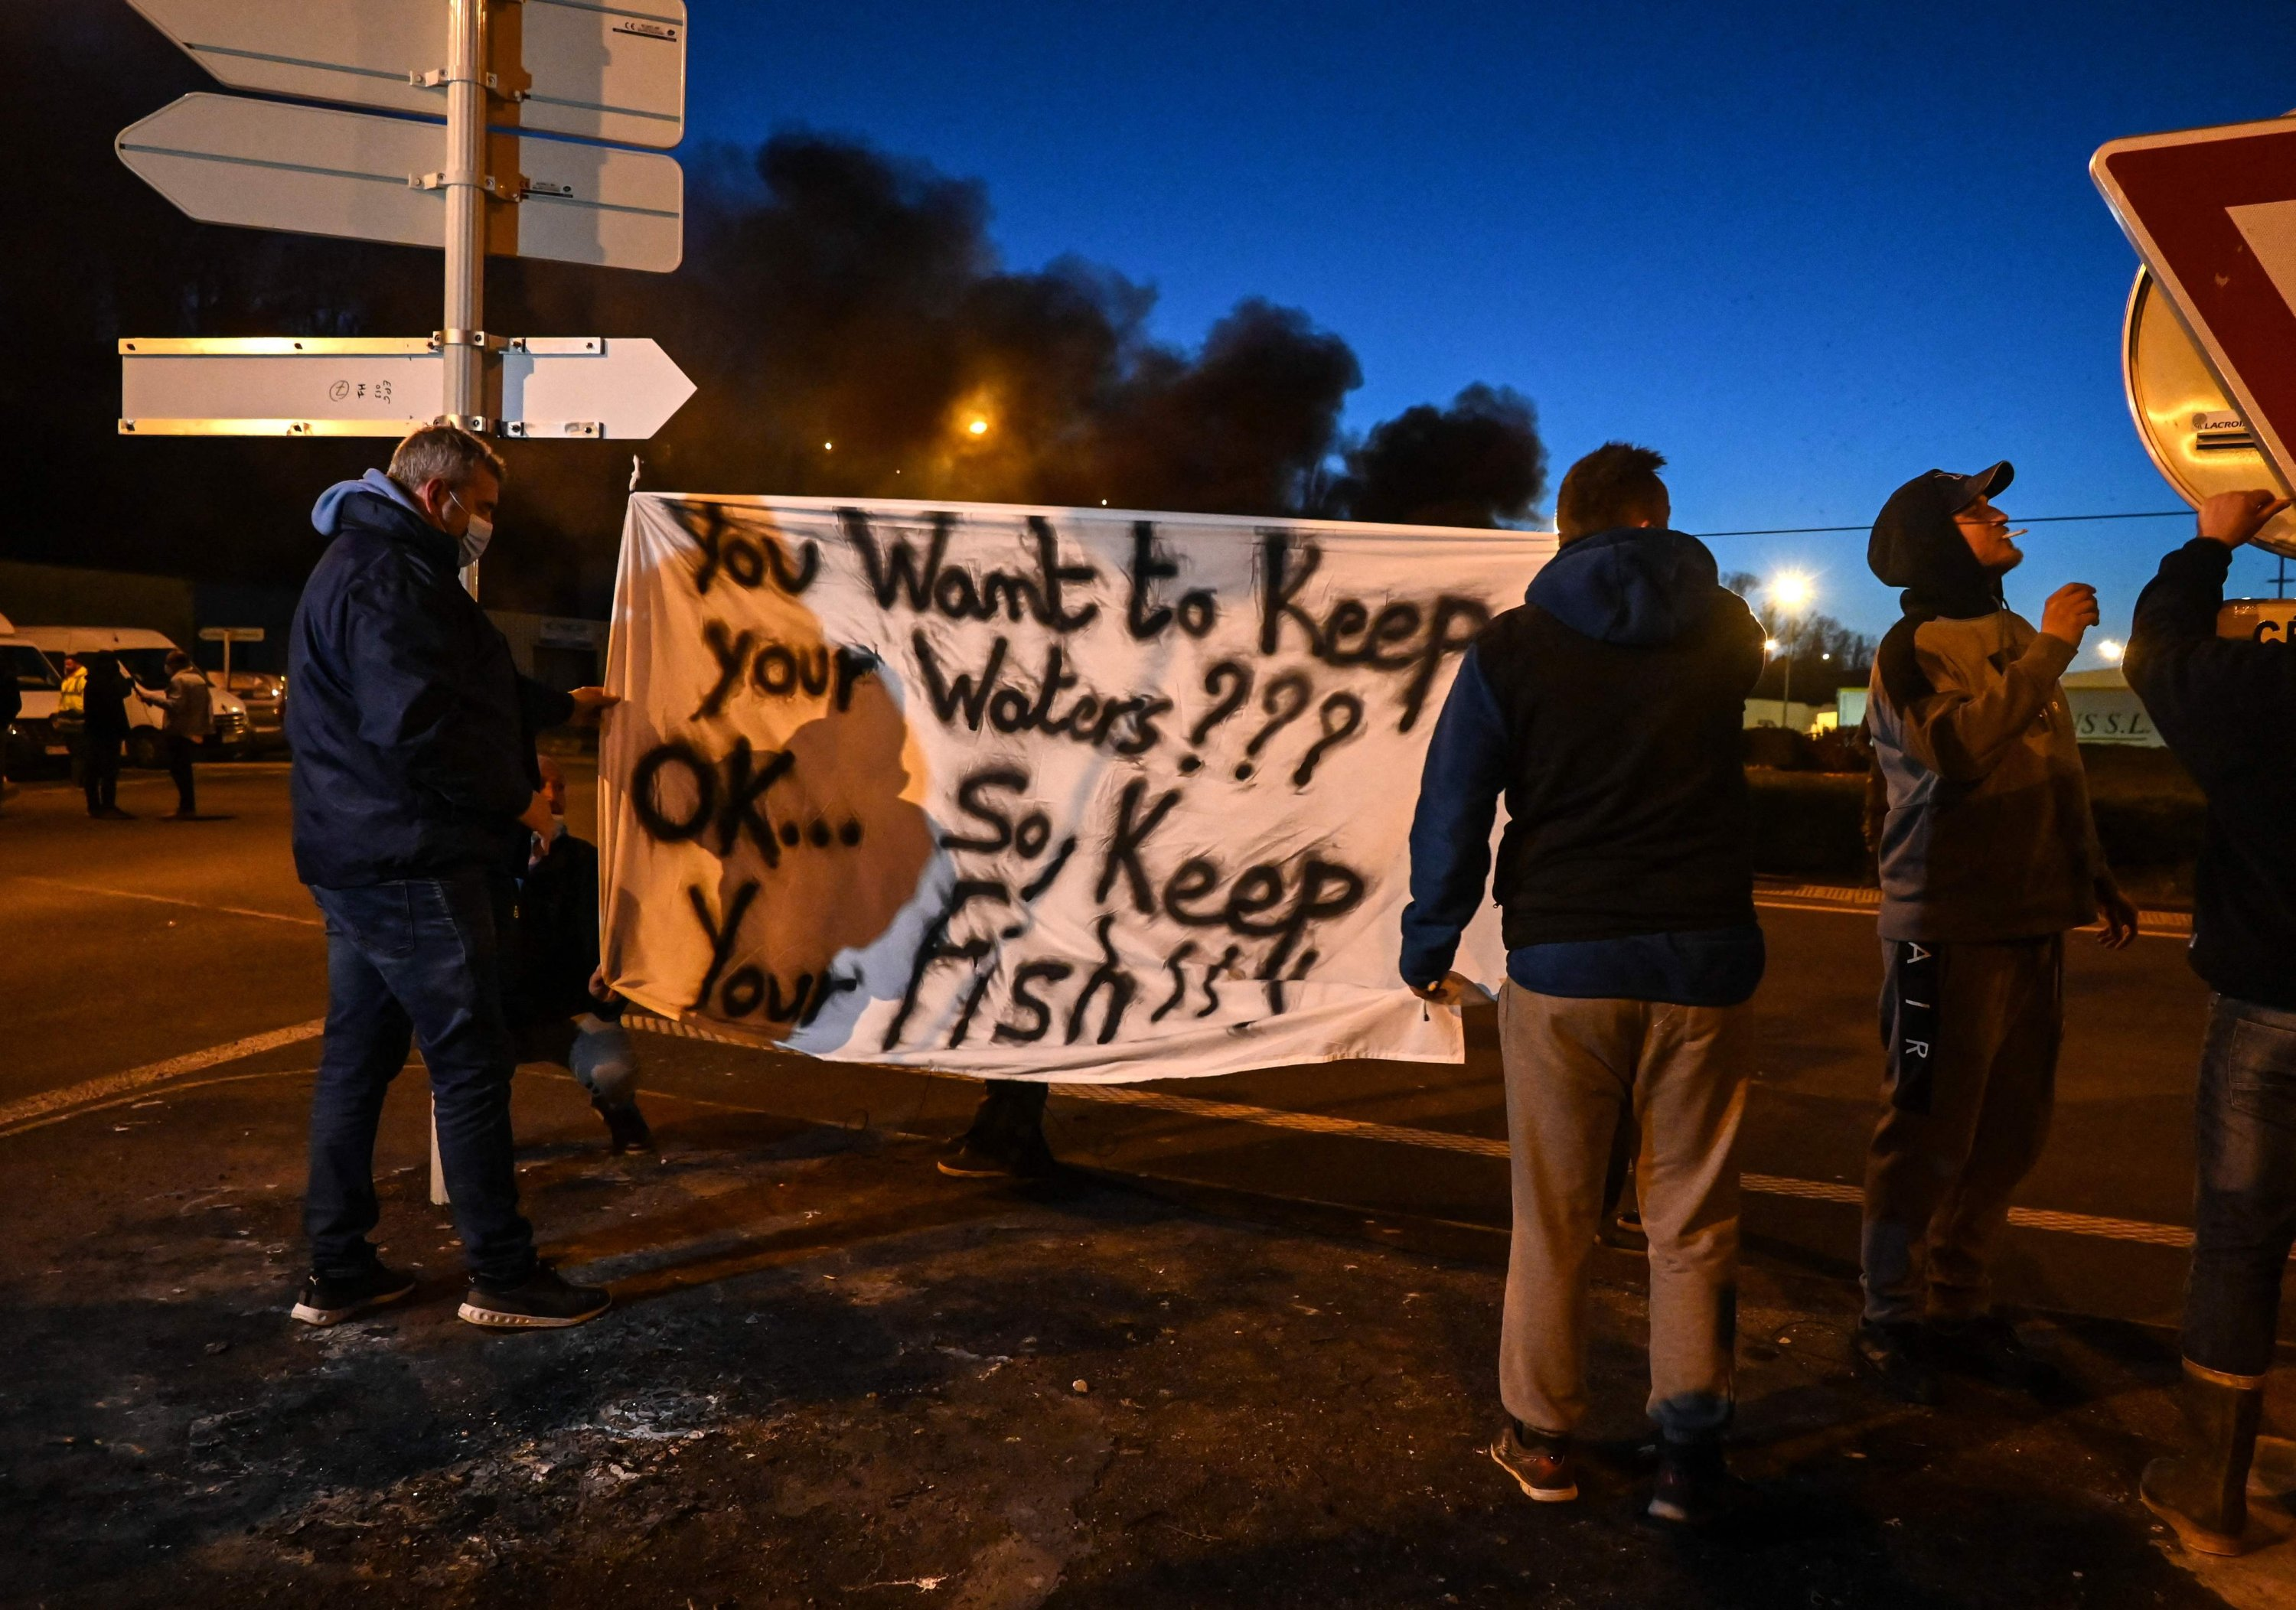 French fishermen stand near a banner as they gather as part of a protest action against the delay in granting licenses to access British waters at the port of Boulogne-sur-Mer on April 22, 2021. (AFP Photo)